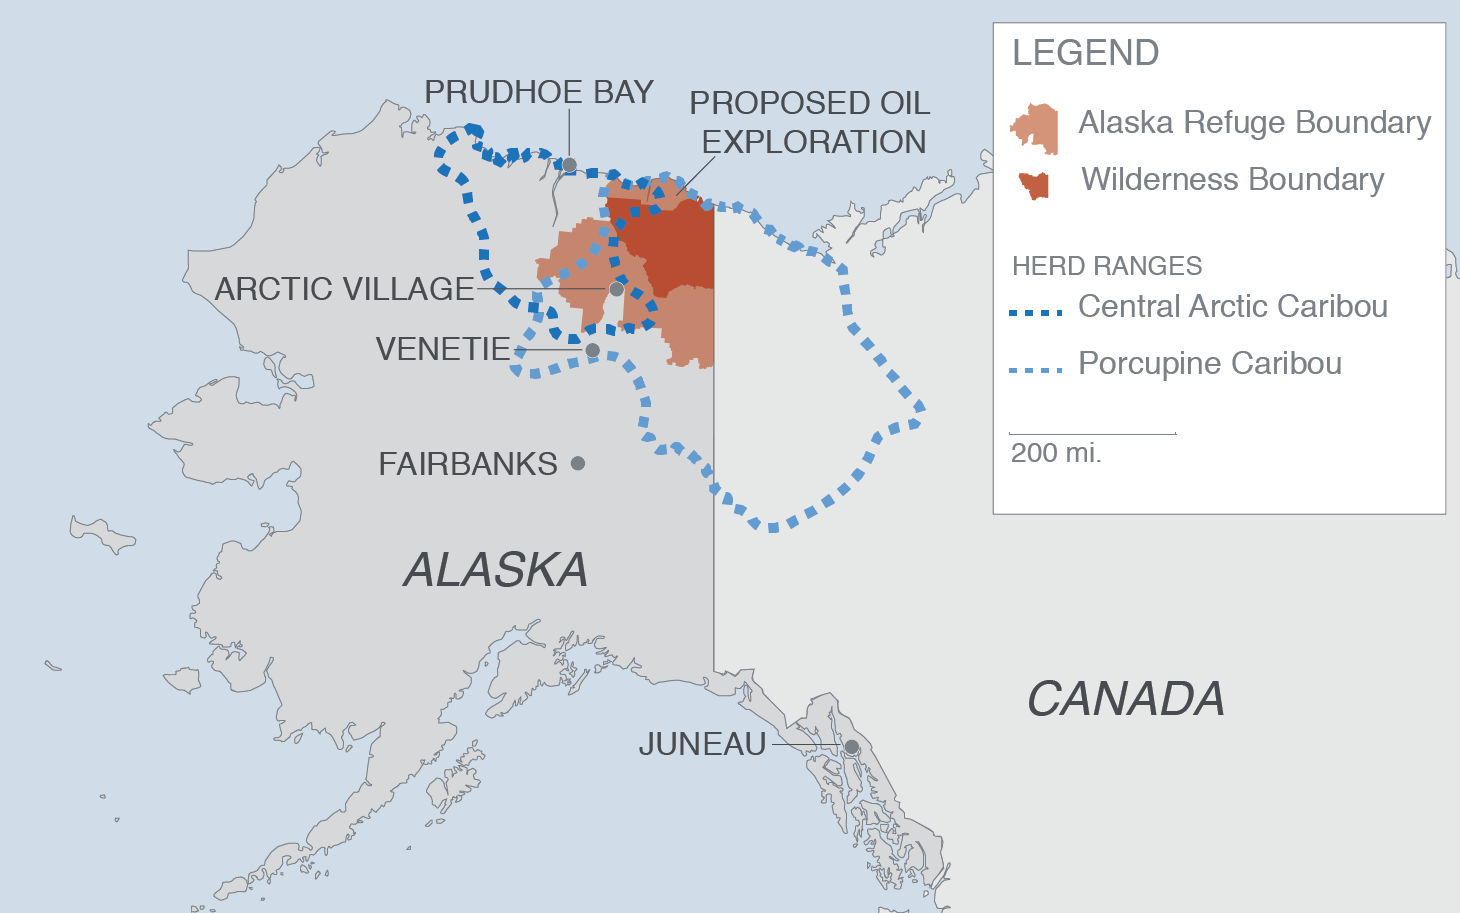 source u s fish and wildlife service arctic national wildlife refuge comprehensive conservation plan chapter 4 map by alex newman al jazeera america